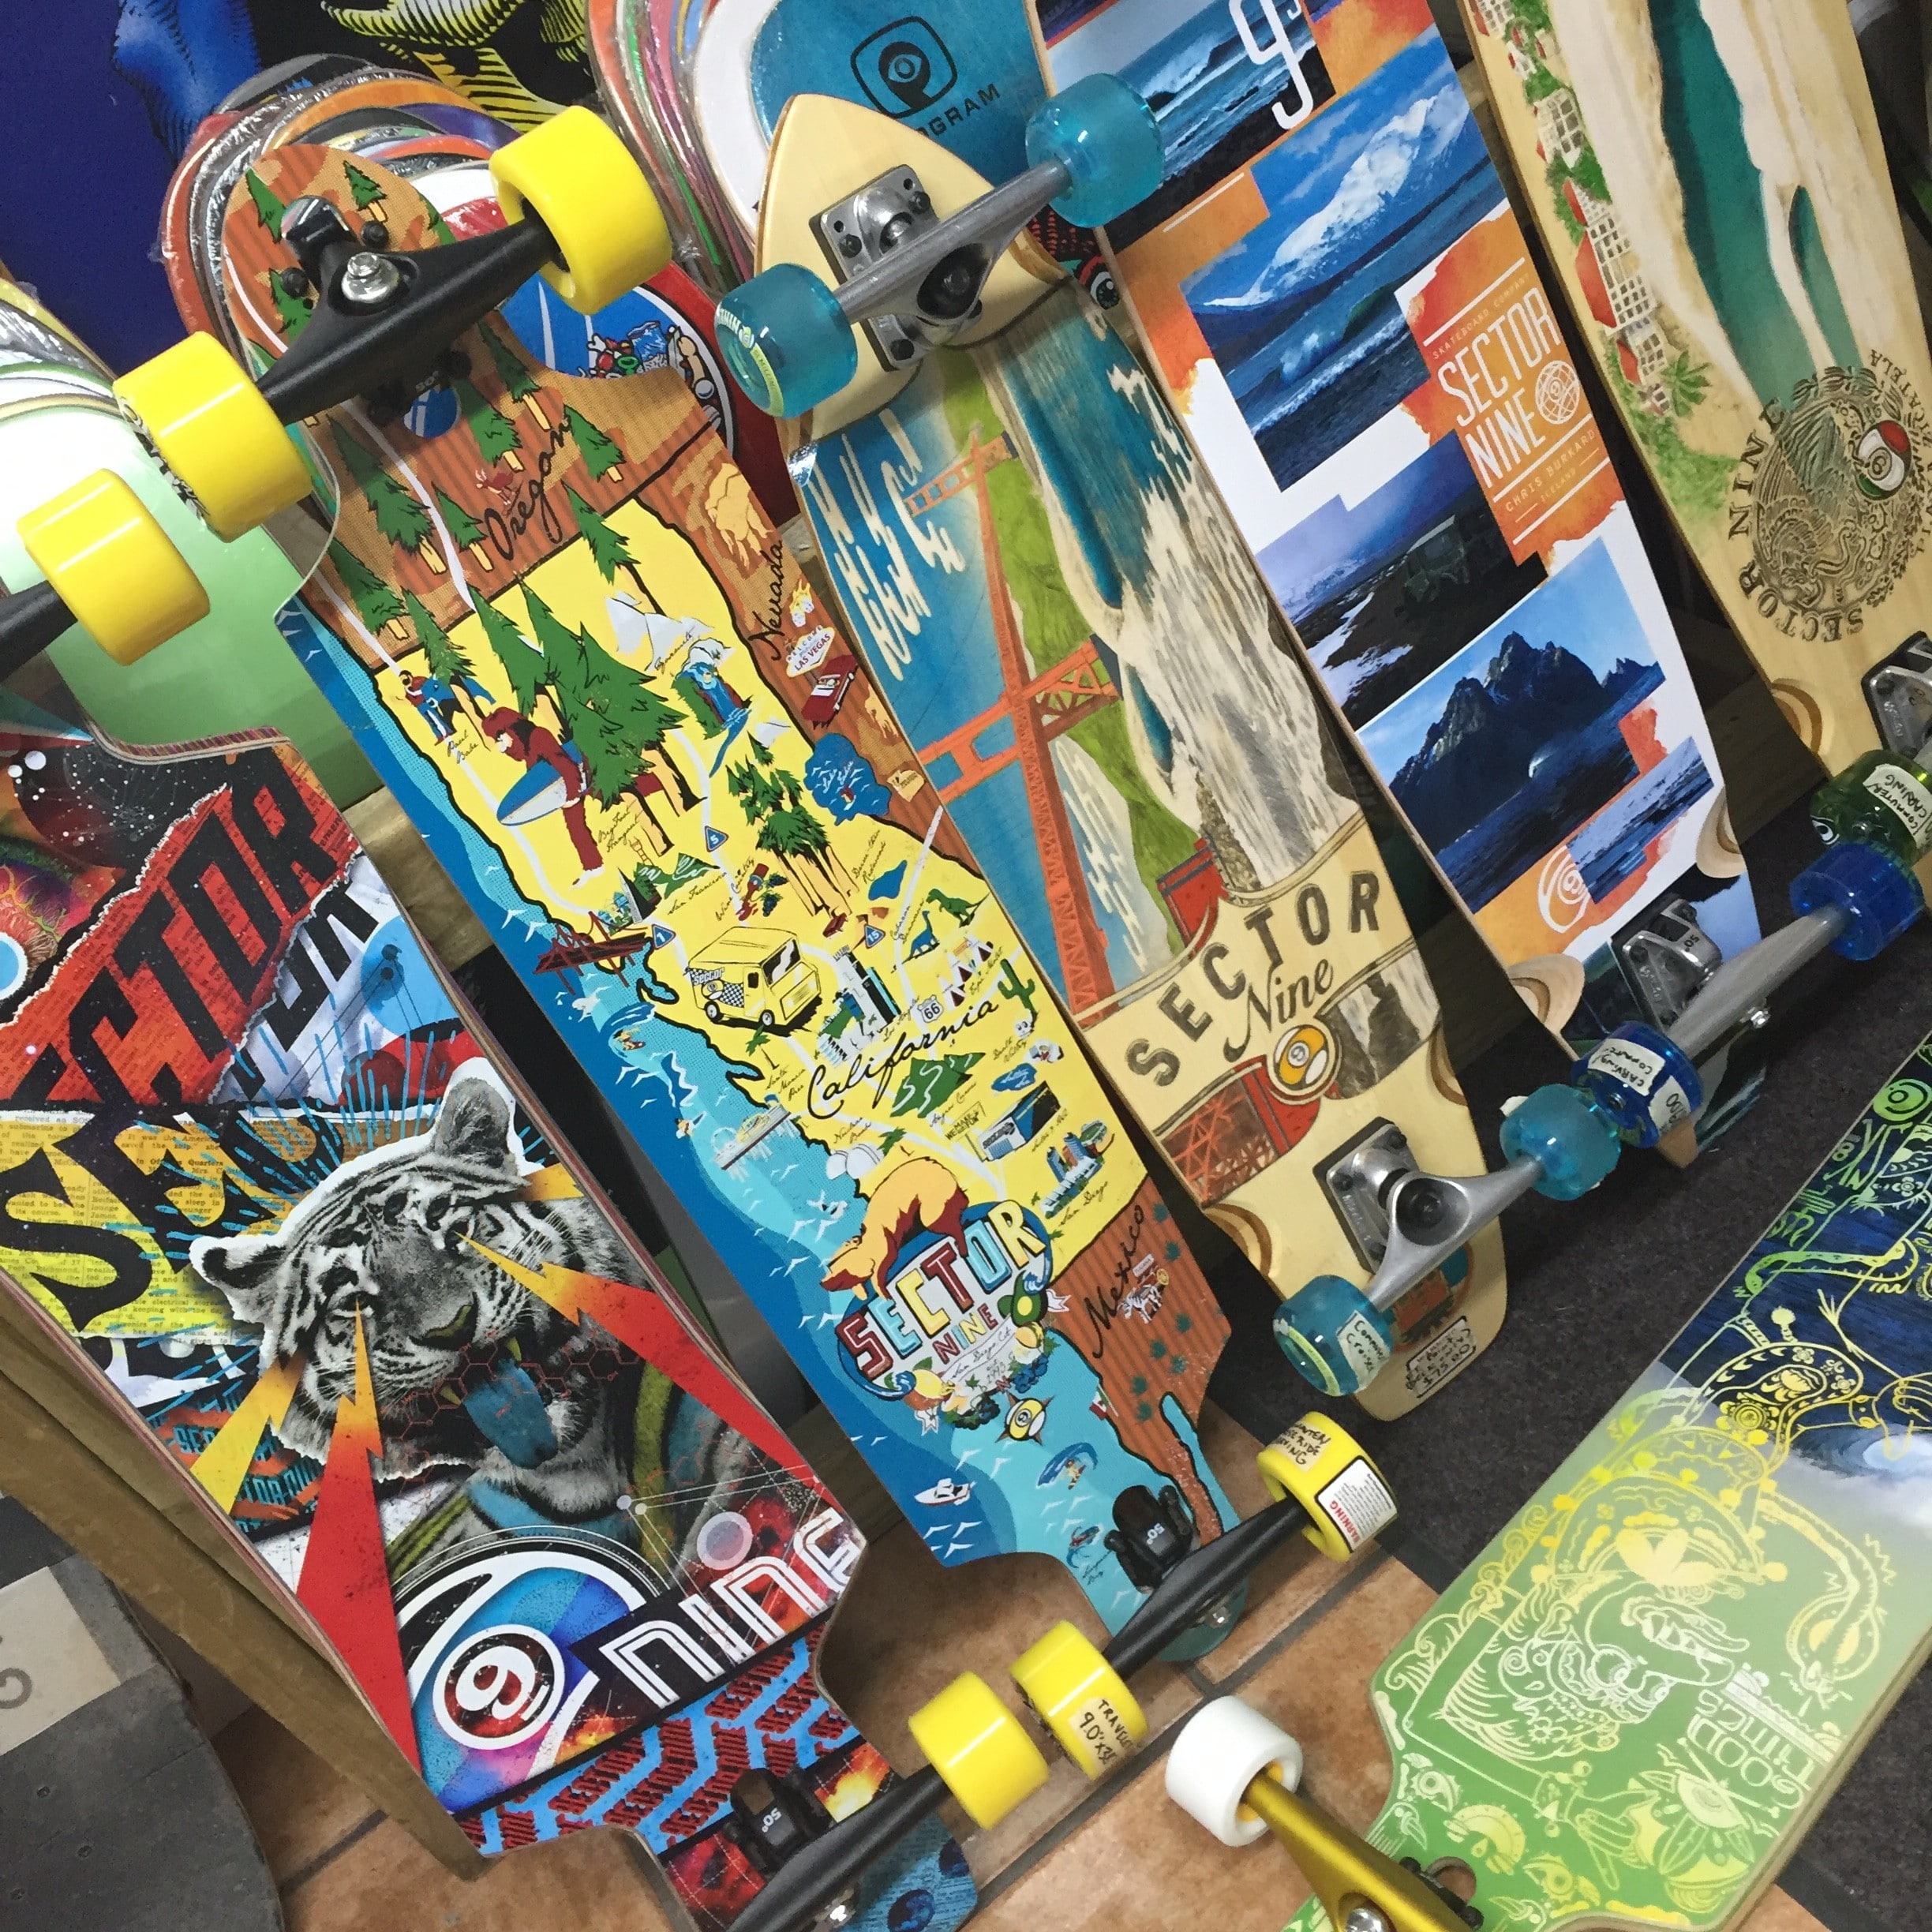 Sector 9!